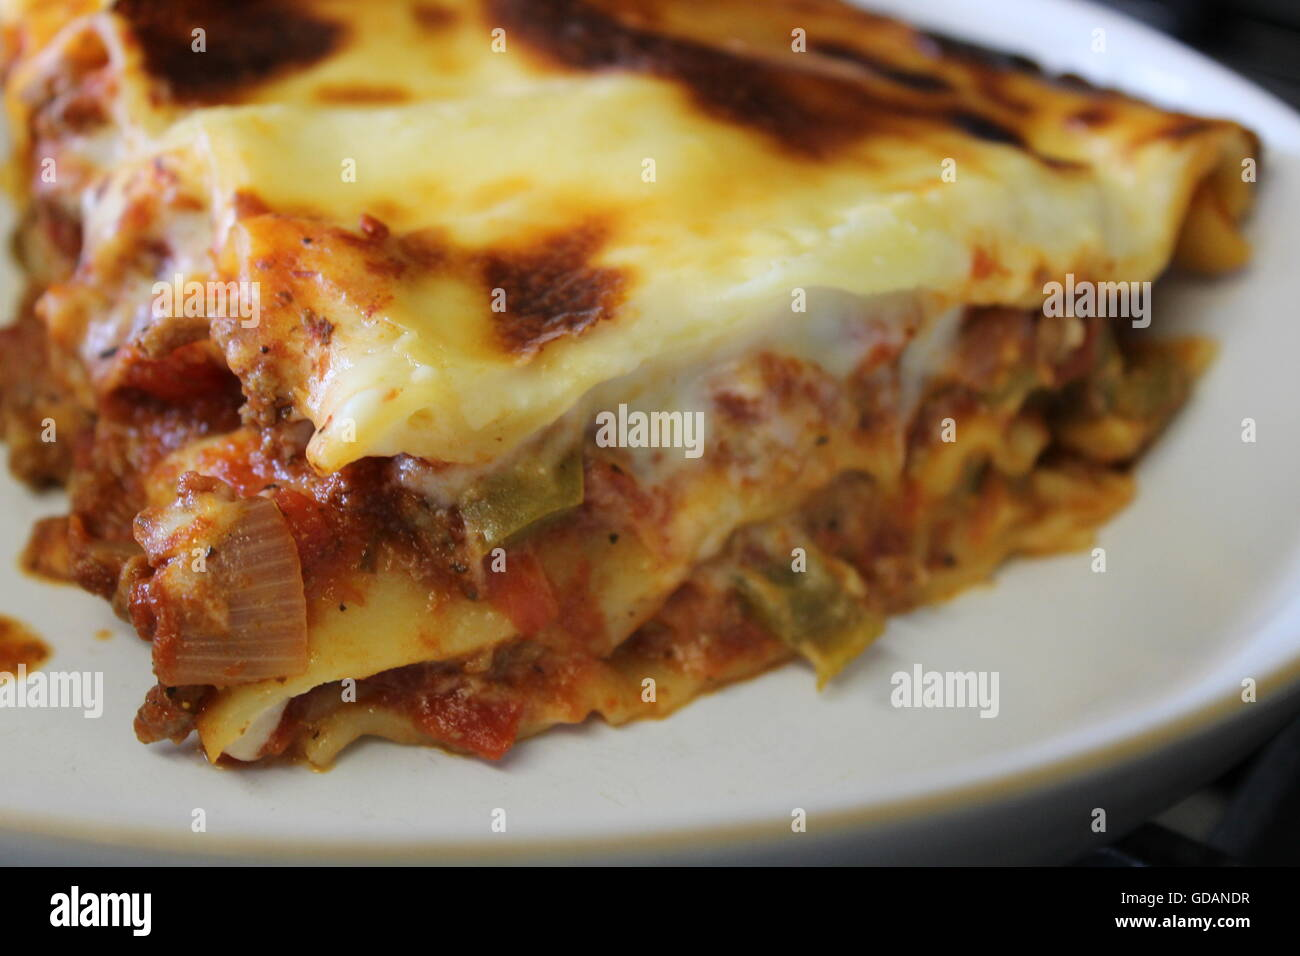 Homemade lasagne, home cooking, homemade cheese sauce, bolognese sauce, mince, onions, peppers, garlic, Italian - Stock Image